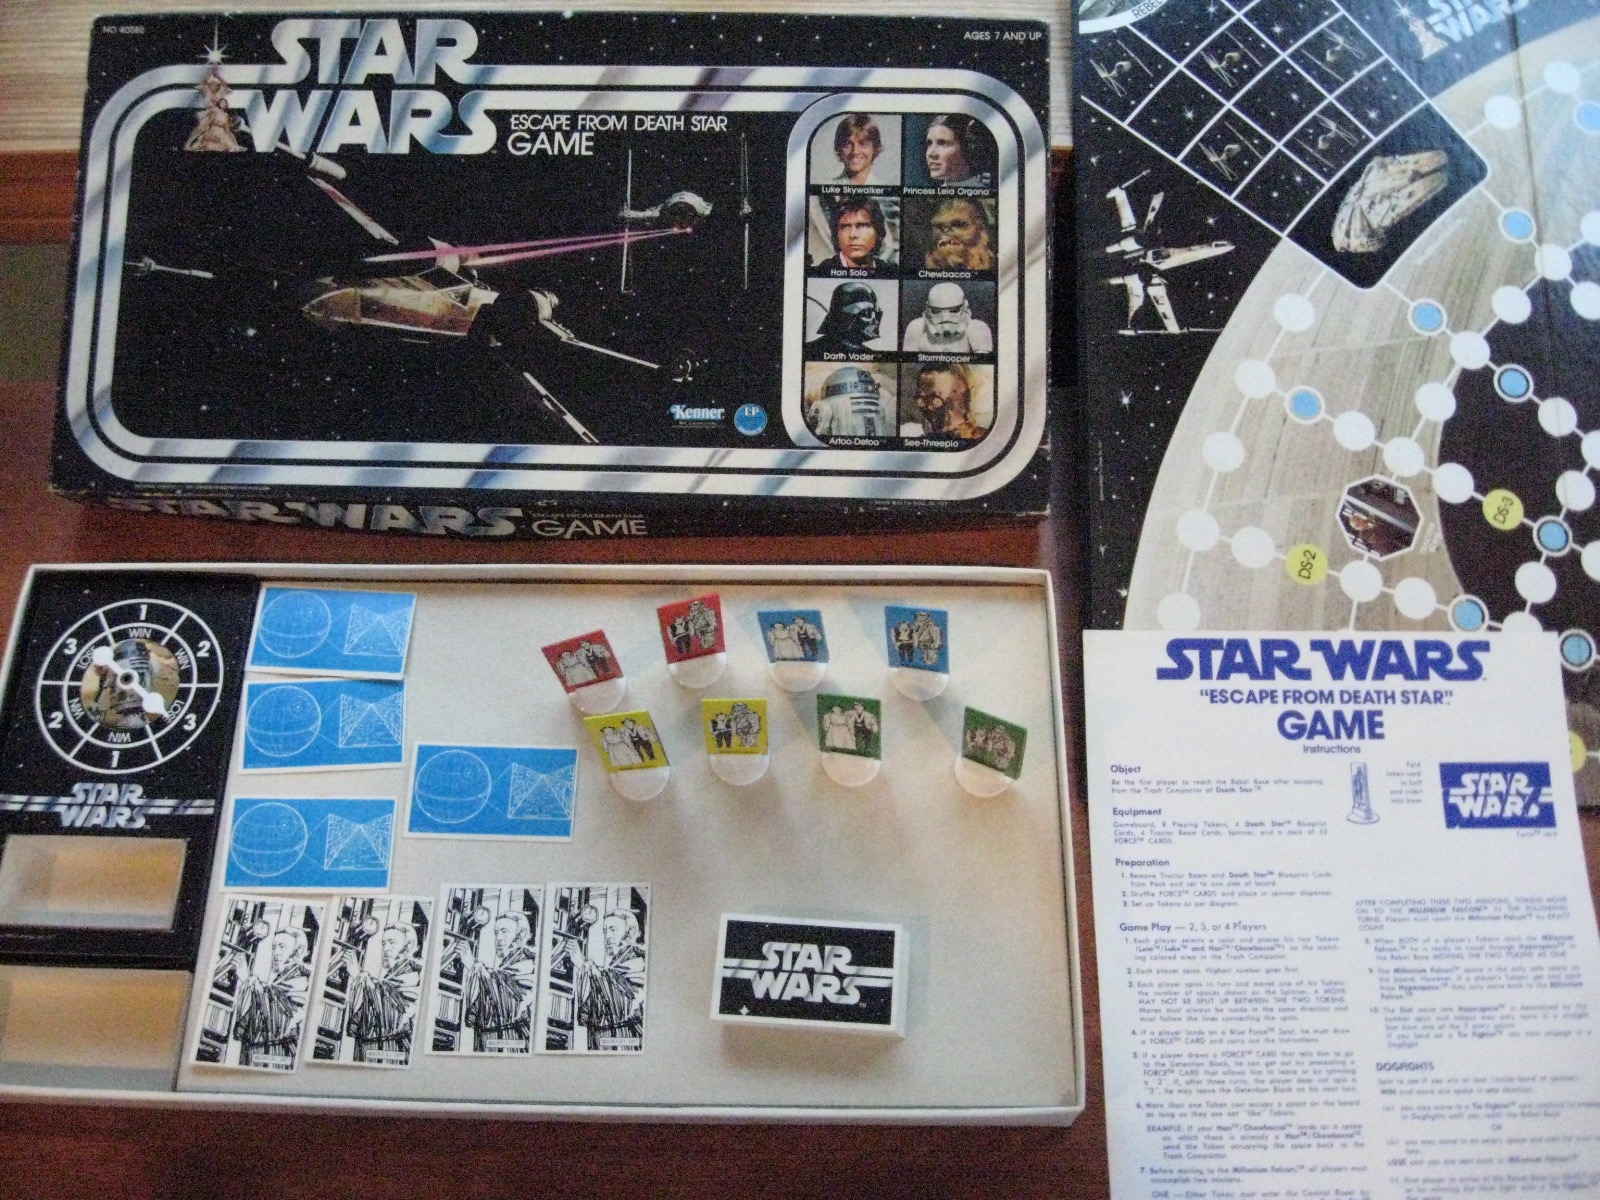 1977 Star Wars 'Escape from Death Star' board game